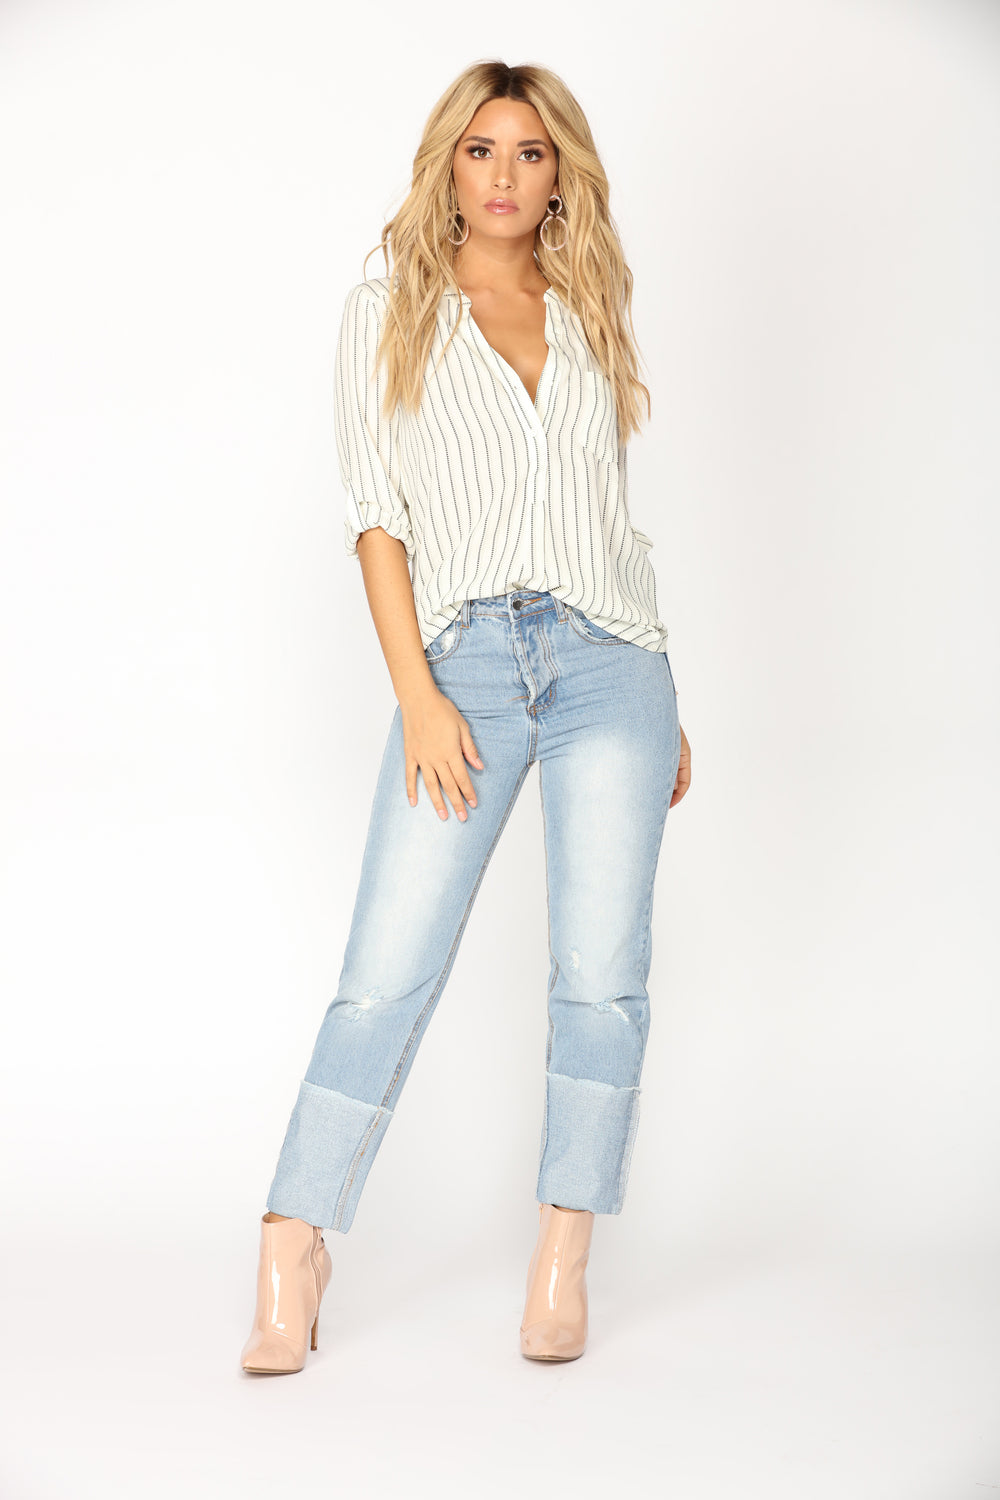 Keep Up With Me Boyfriend Jeans - Light Blue Wash